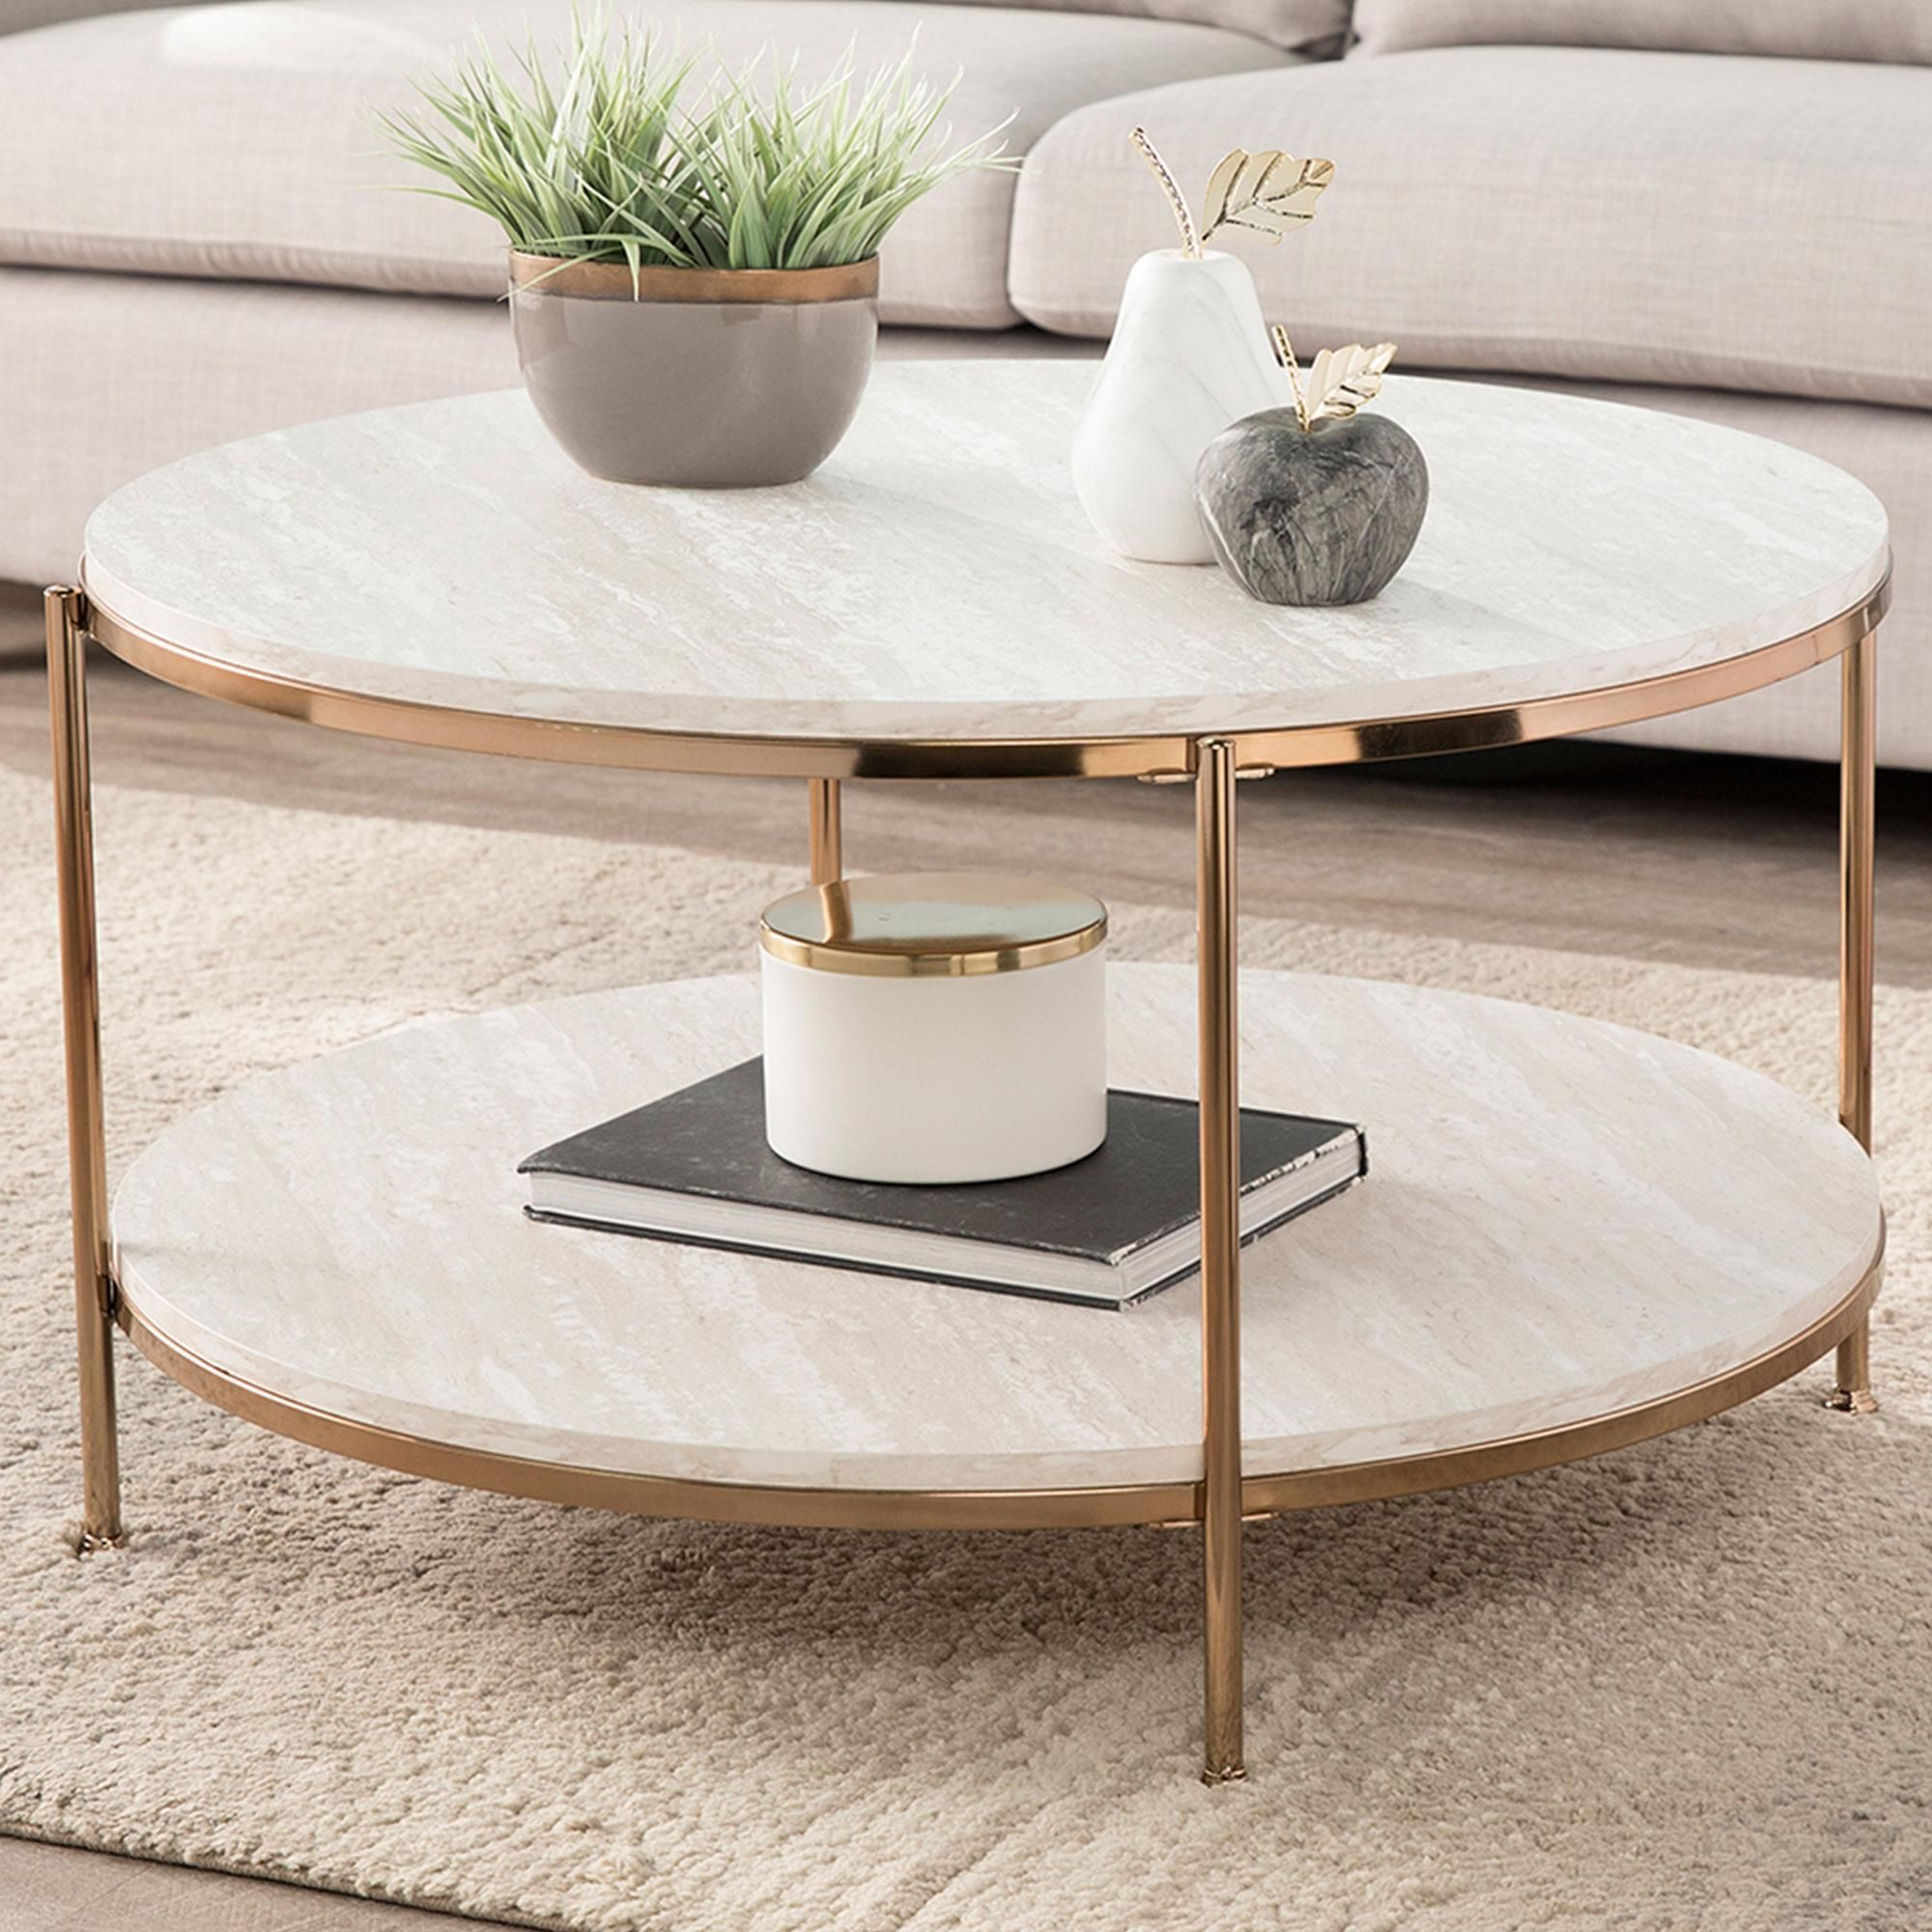 Southern Enterprises Silas Coffee Table In Champagne Faux Travertine Nfm In 2021 Coffee Table Table Southern Enterprises [ 2000 x 2000 Pixel ]